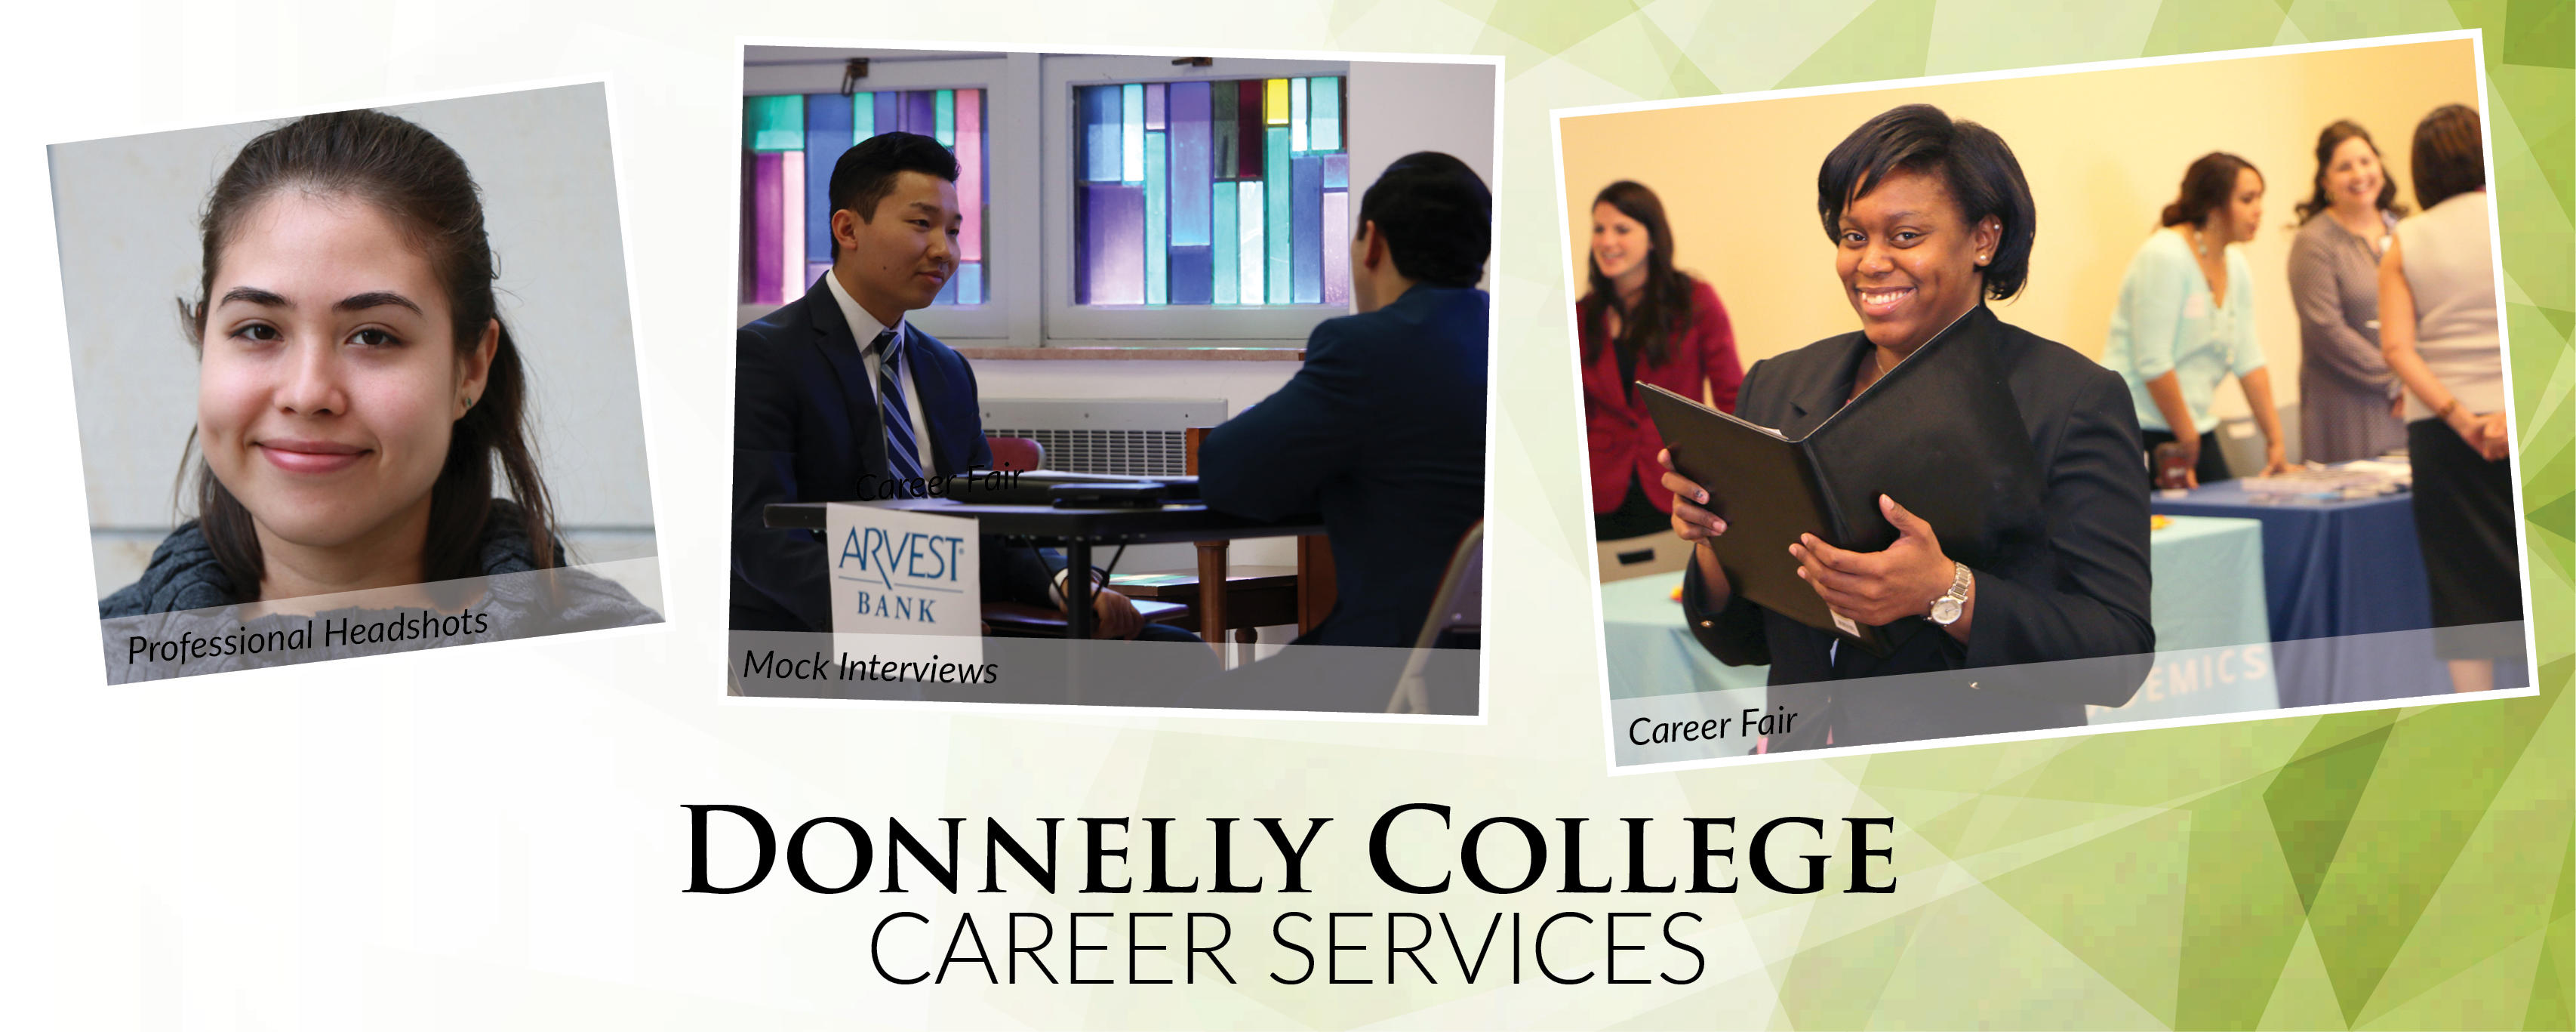 Donnelly College Career Services